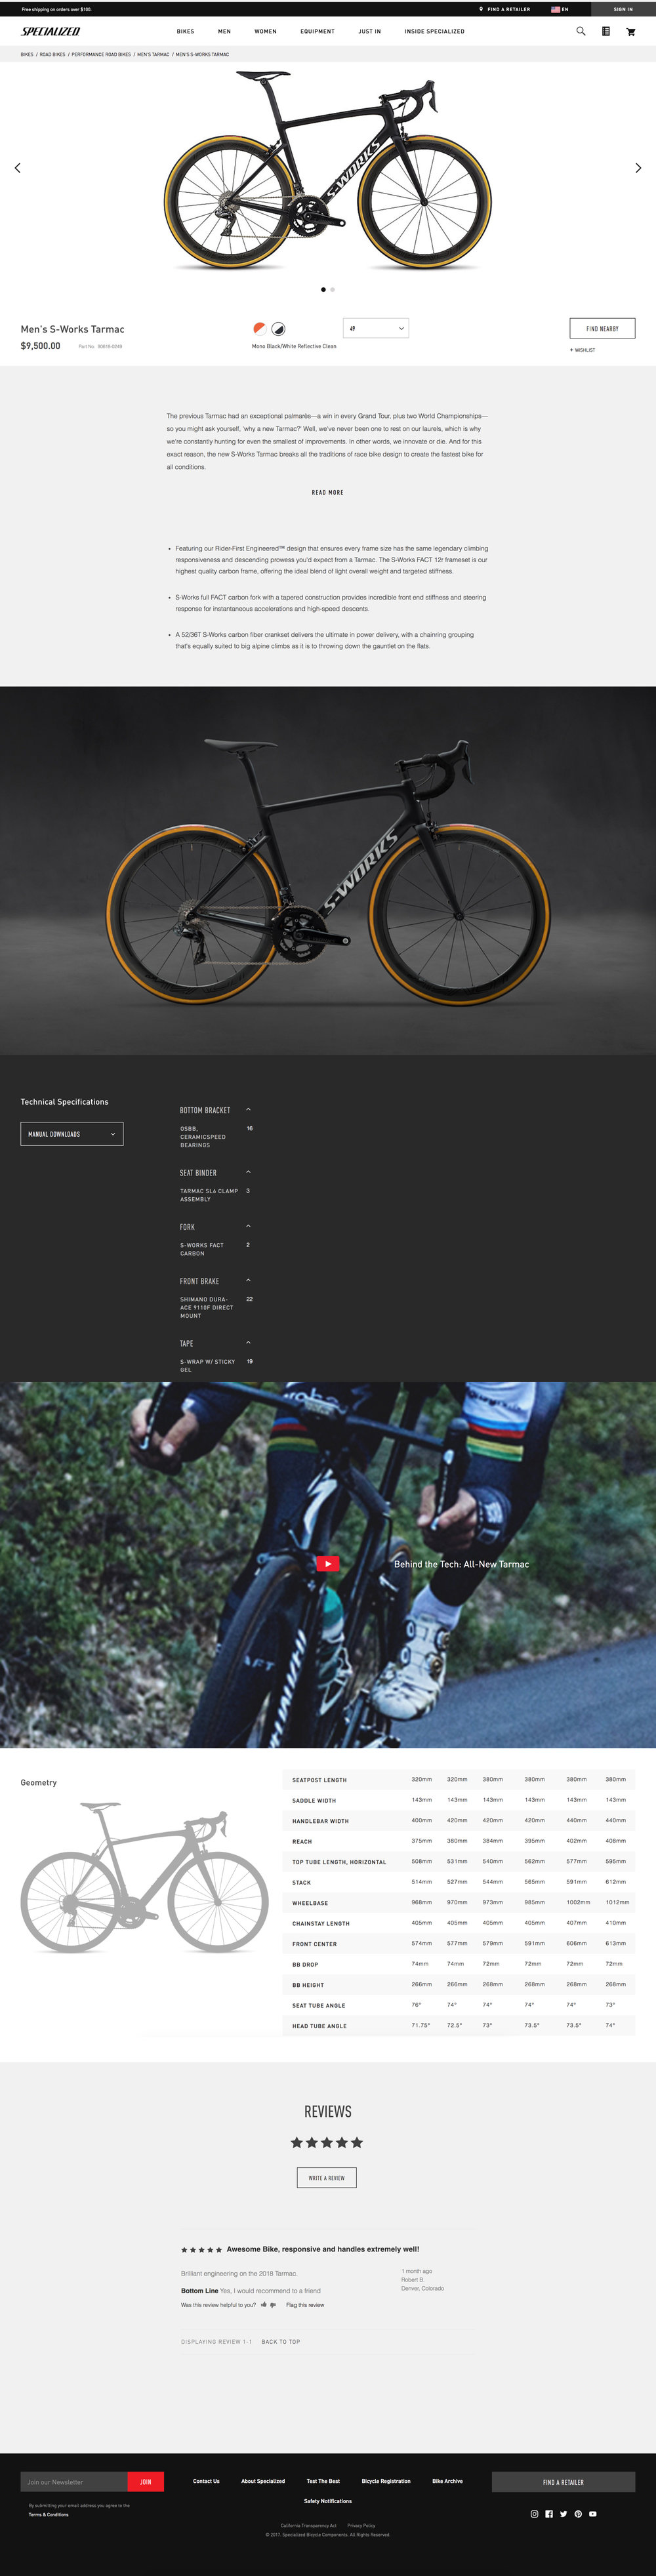 specialized-pdp.jpg